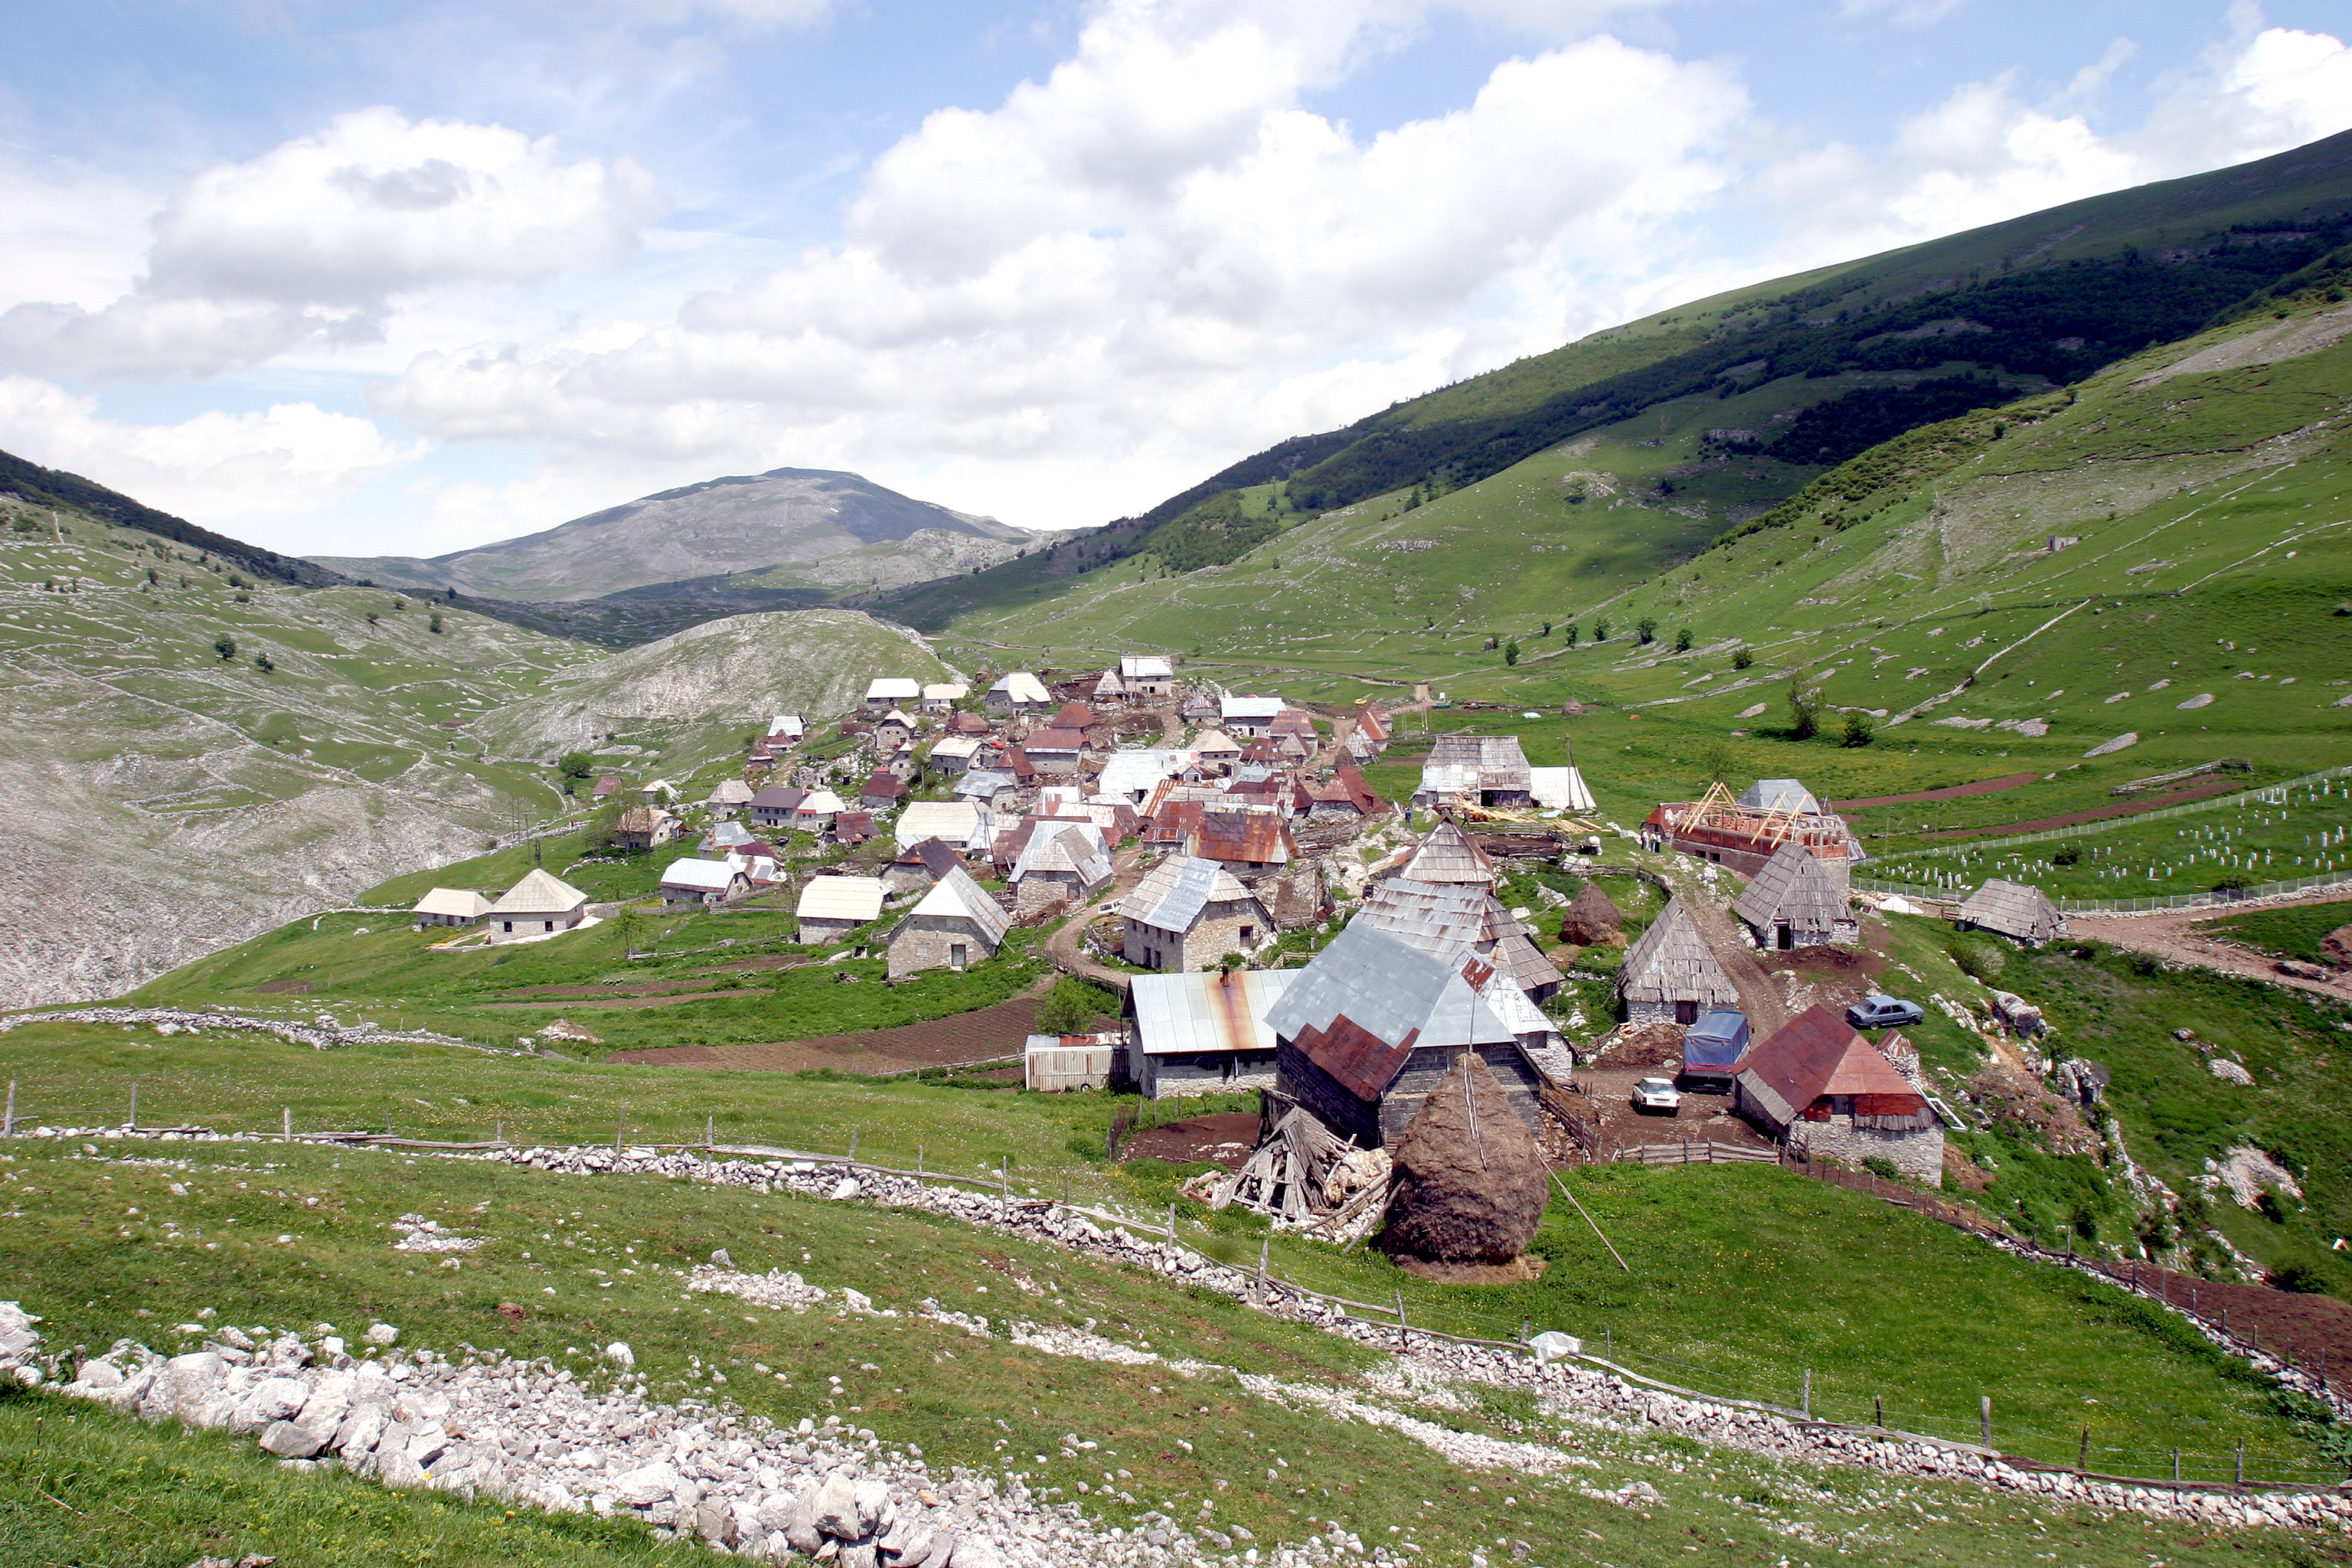 Lukomir The Highest And Most Isolated Village In Bosnia